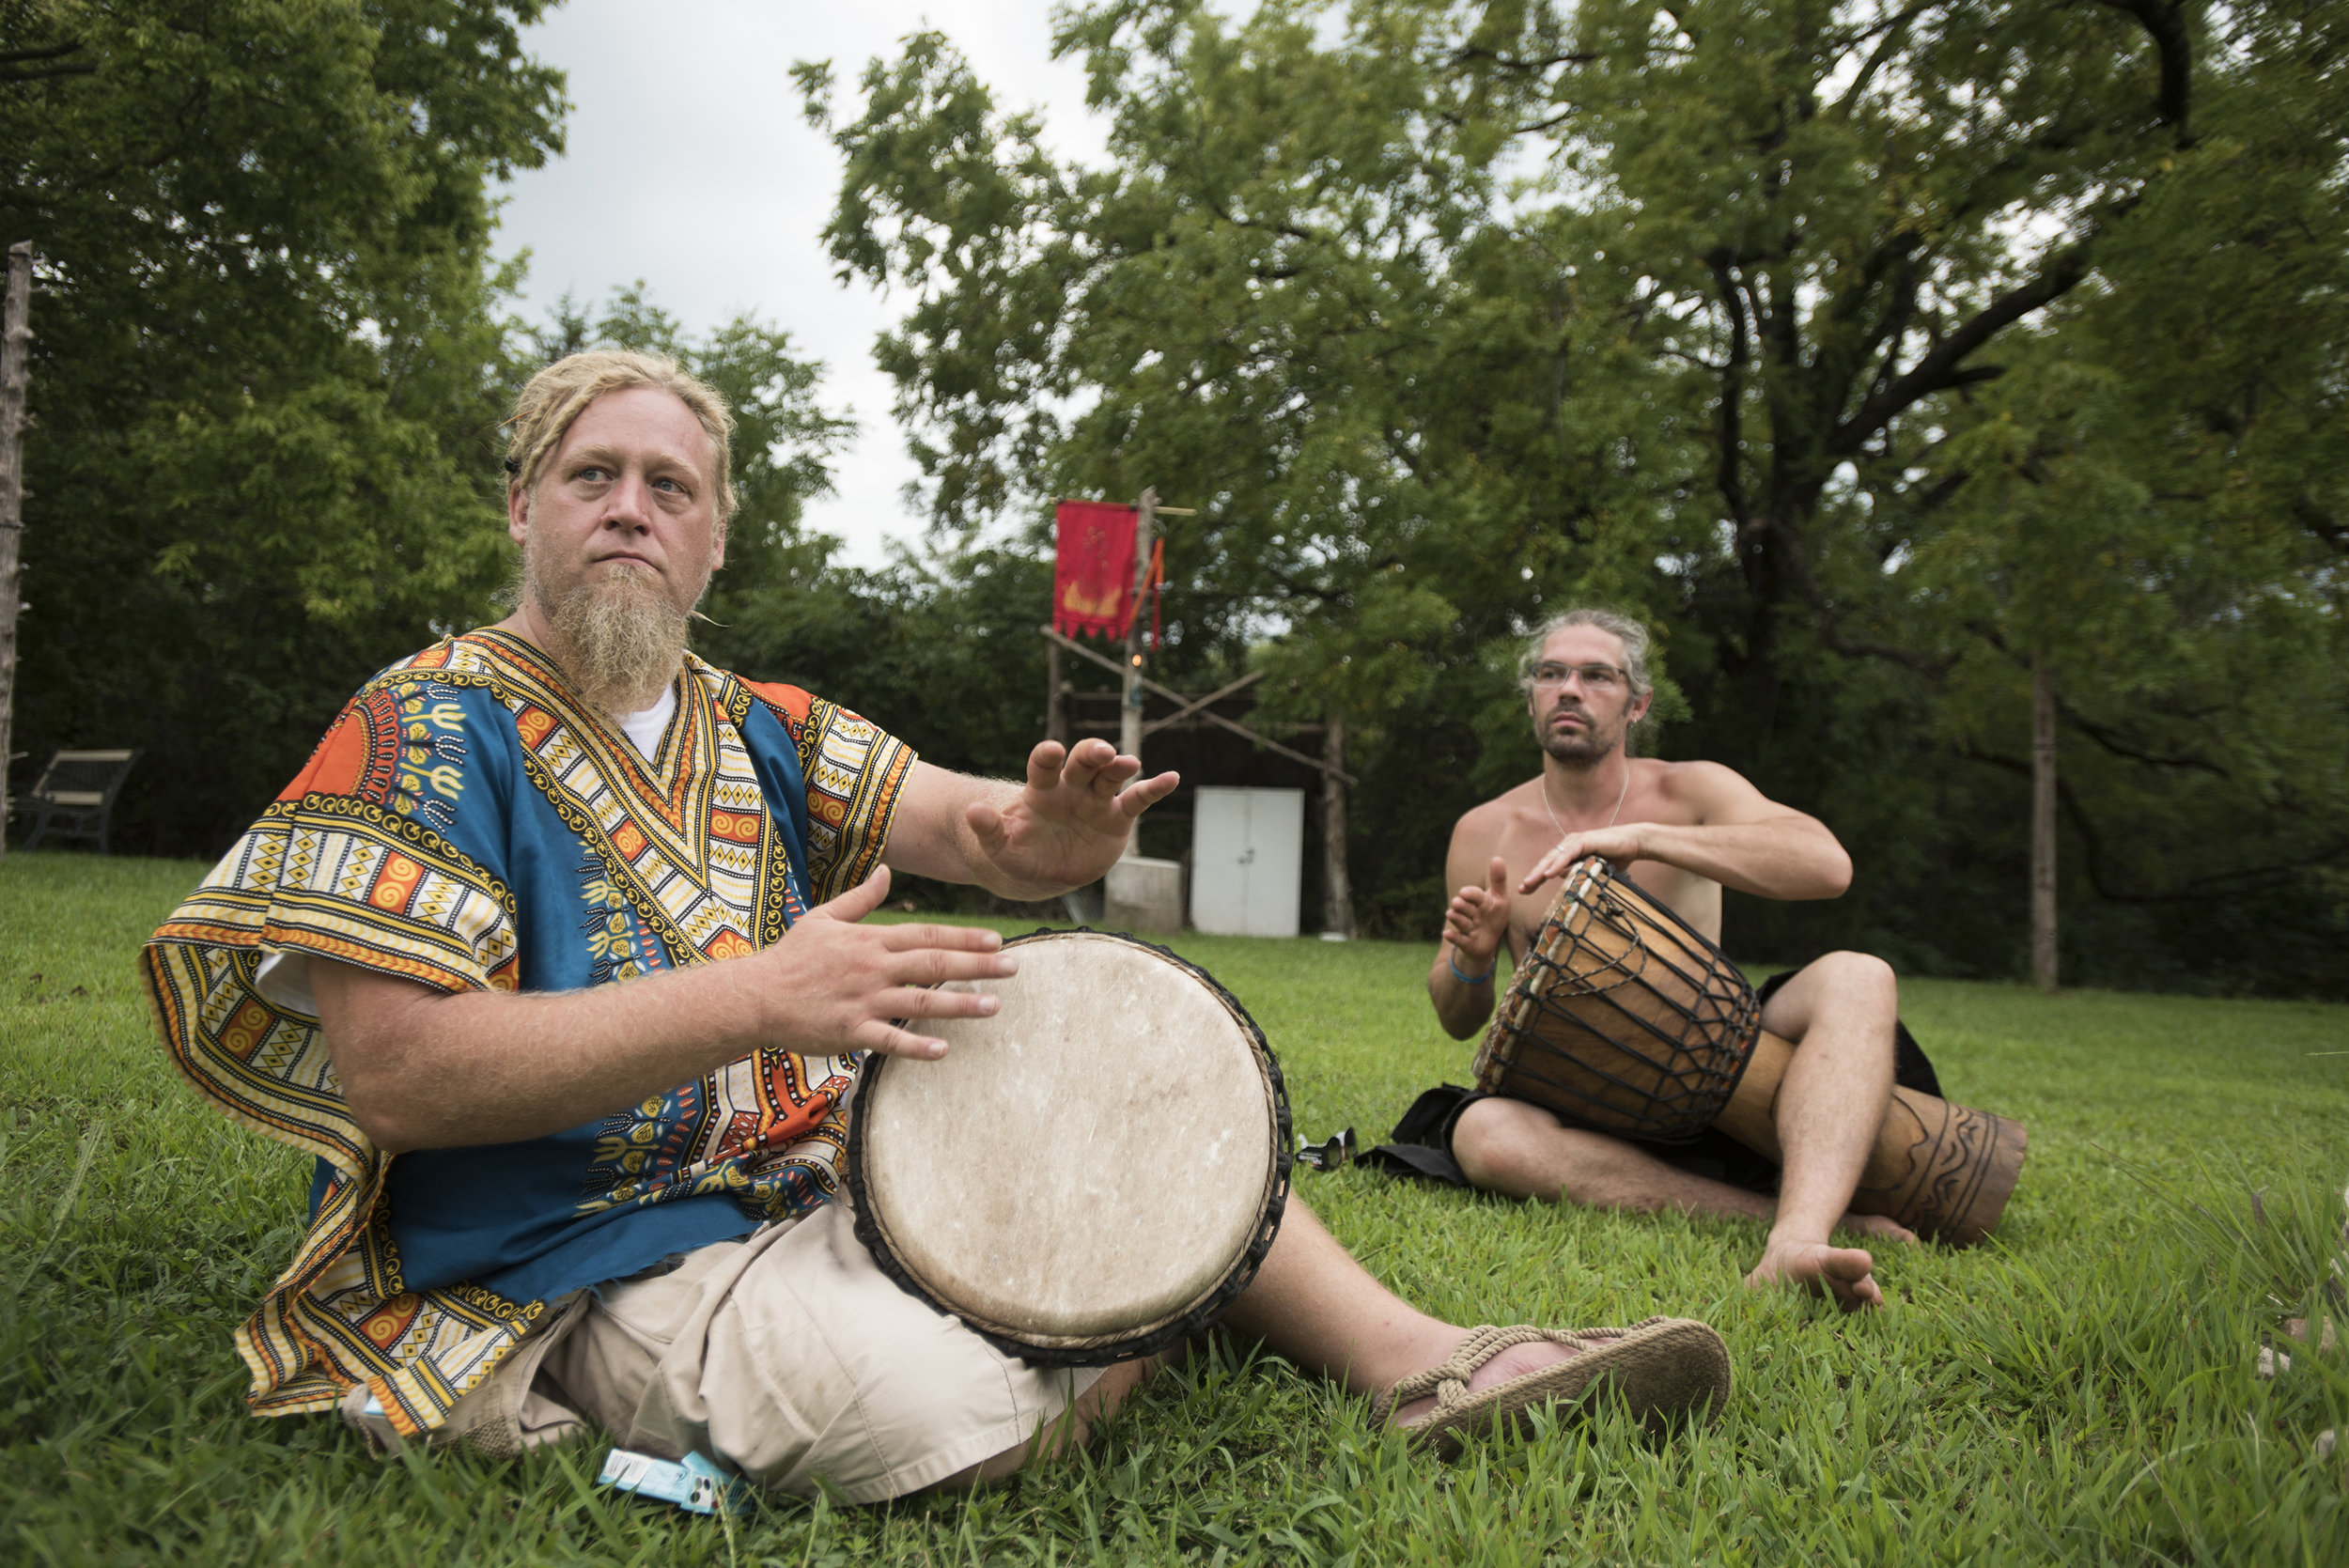 Don Breuer and Patrick Bollinger drum as the solar eclipse gets closer to reaching totality. Drumming and chanting is an important aspect of pagan worship and can be seen in many rituals and celebrations.